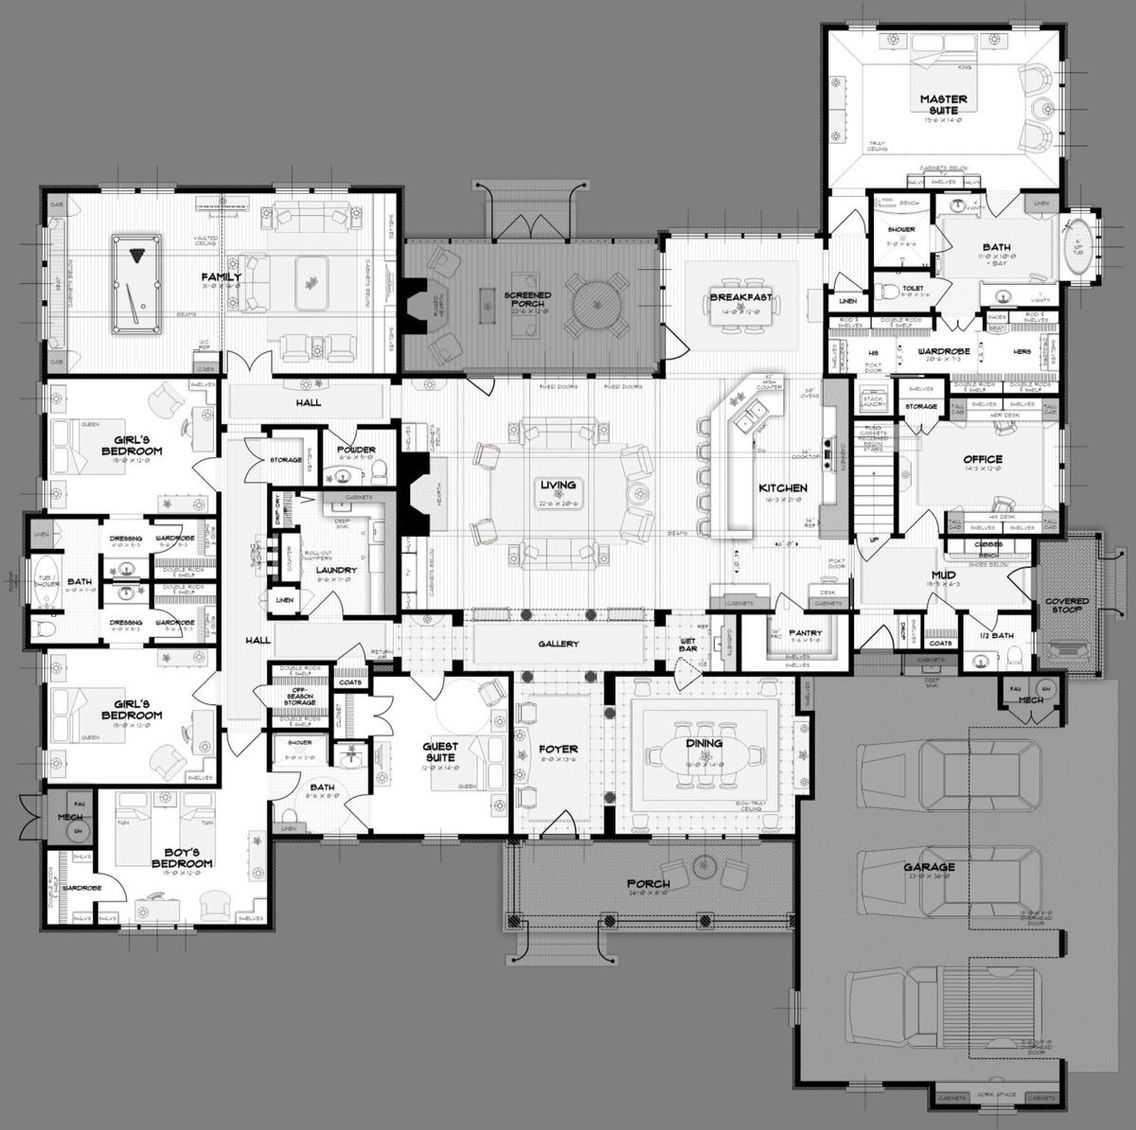 Great House Plan 5 Bedroom House Plans House Plans House Floor Plans